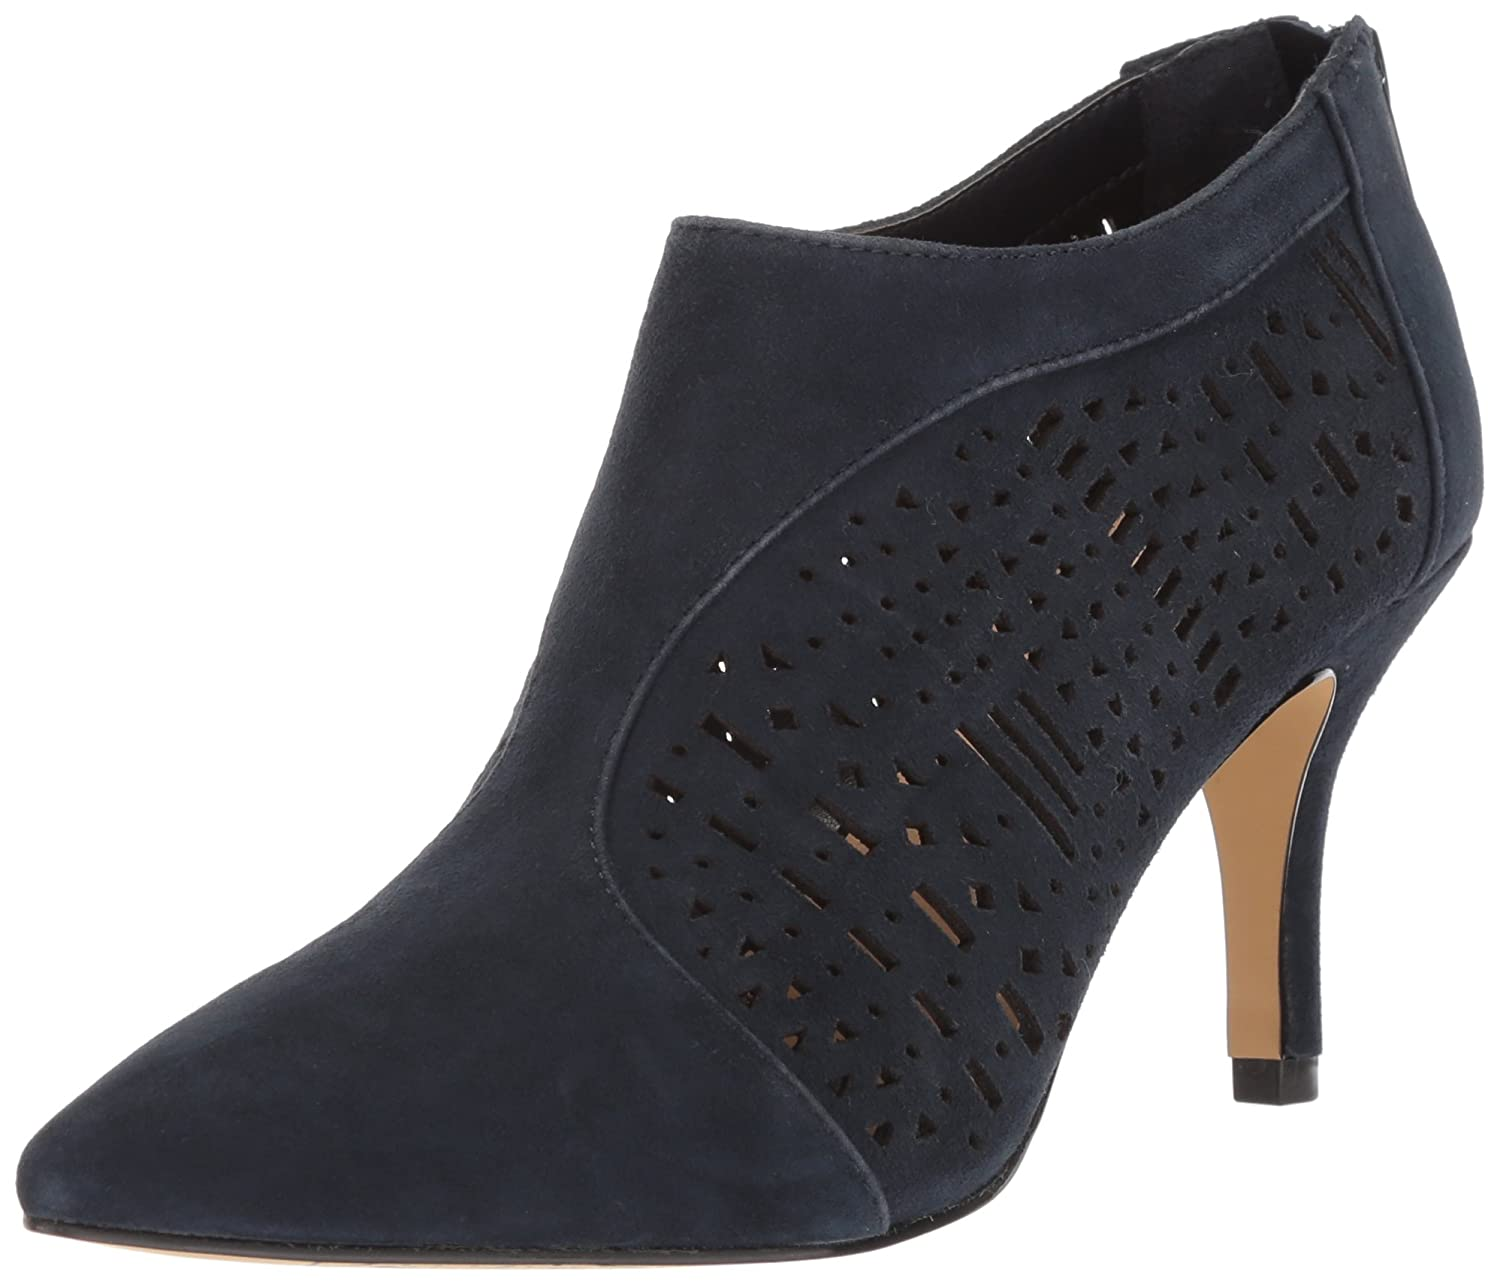 Bella Vita Women's Darlene Ankle Boot B076DNP6NB 6 B(M) US|Navy Kid Suede